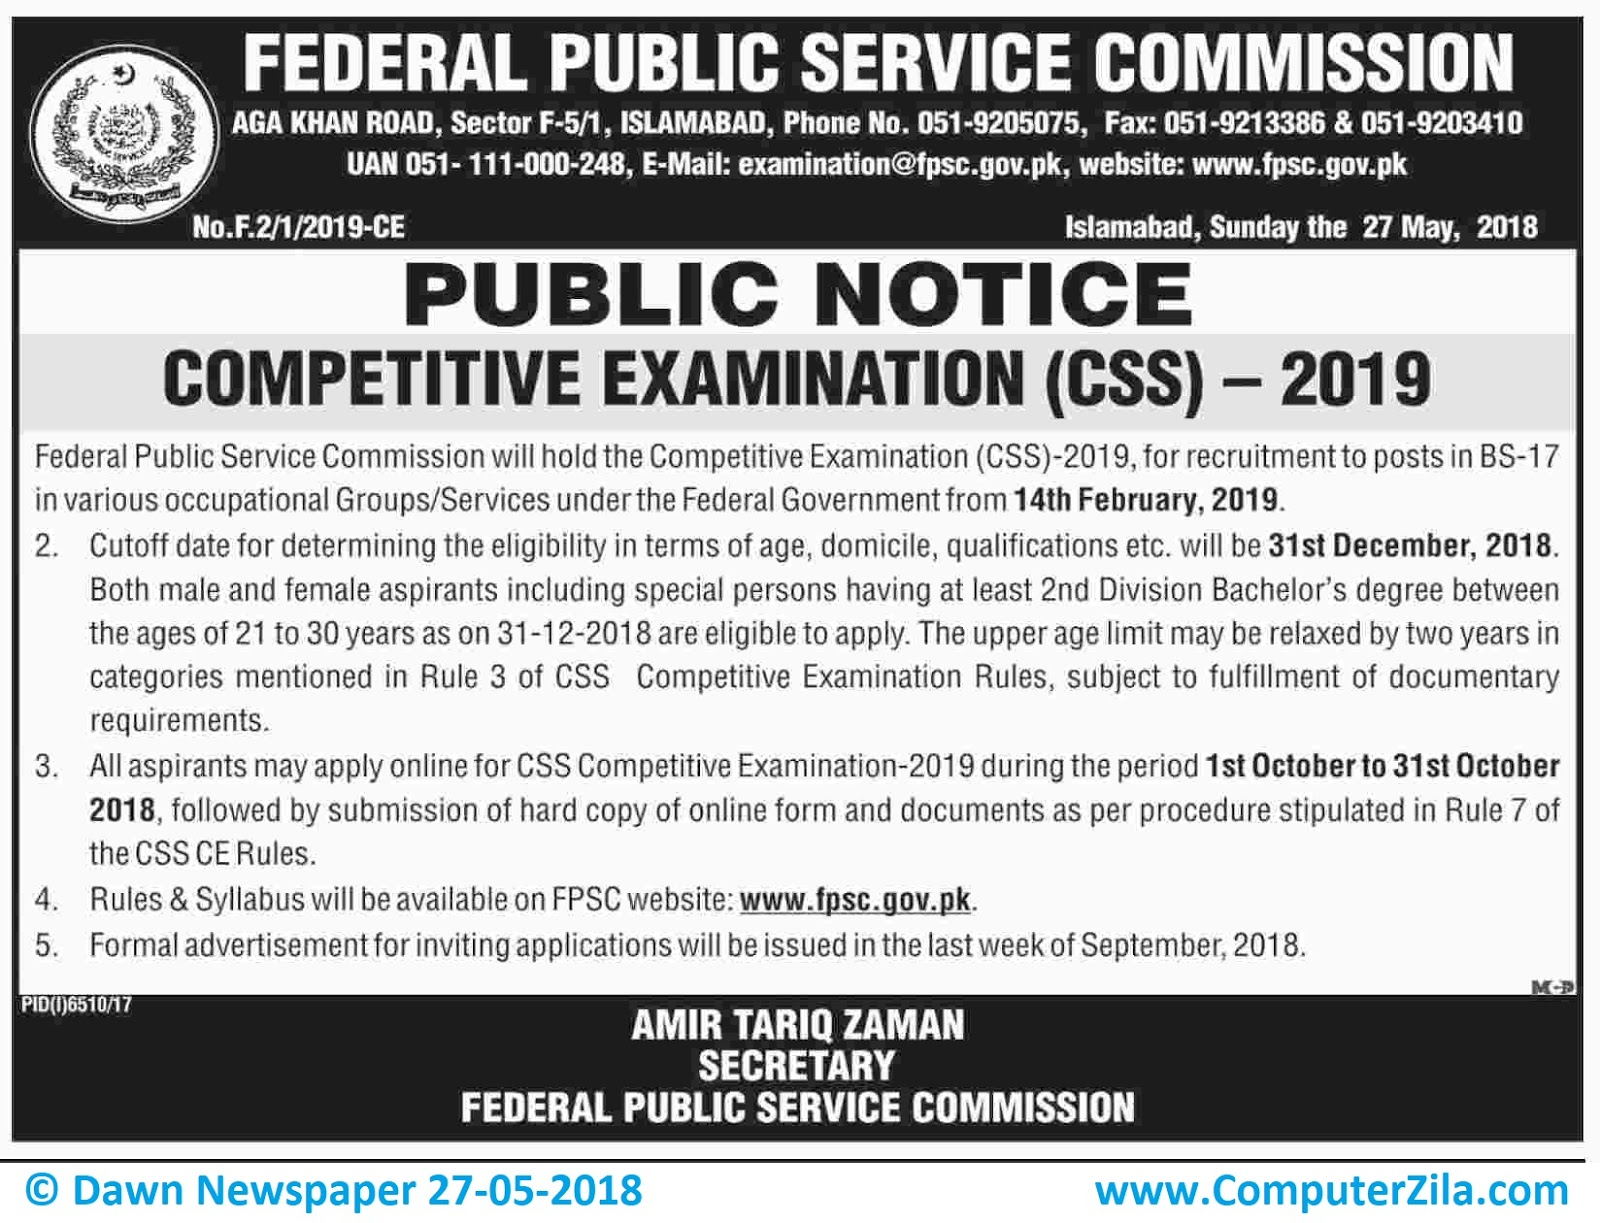 Competitive Examination CSS - 2019 at Federal Public Service Commission